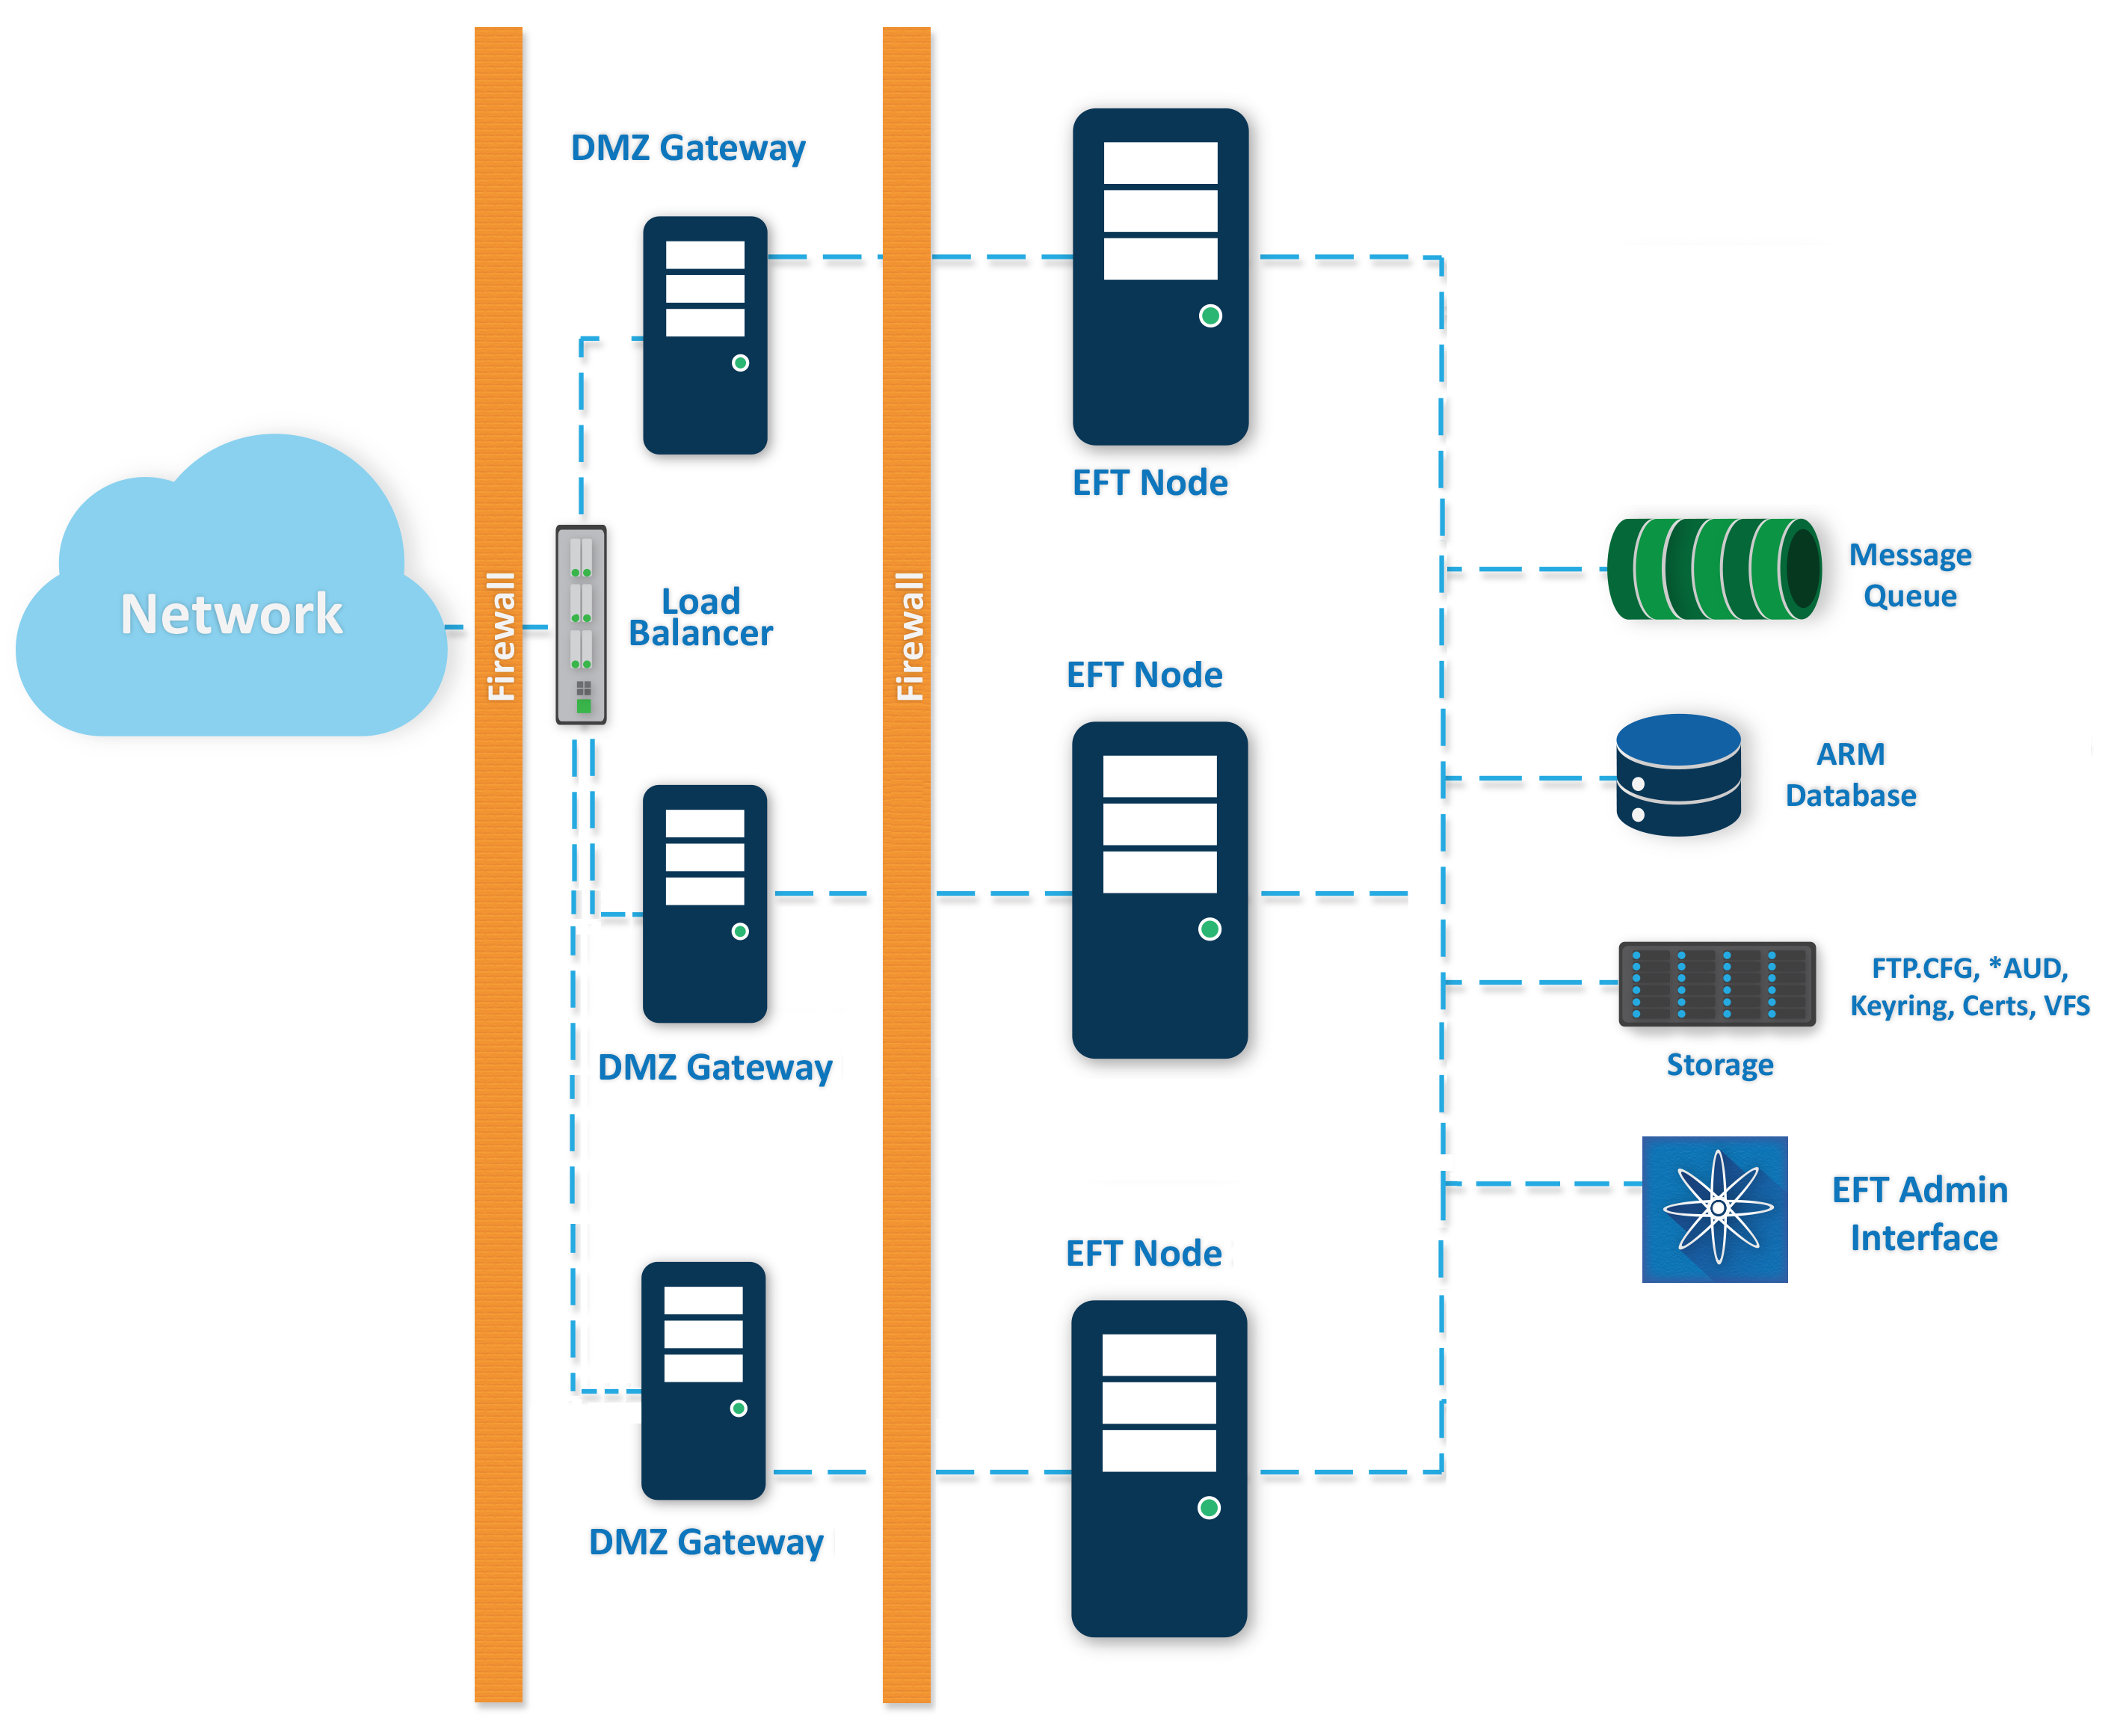 EFT High Availability Active-Active deployment